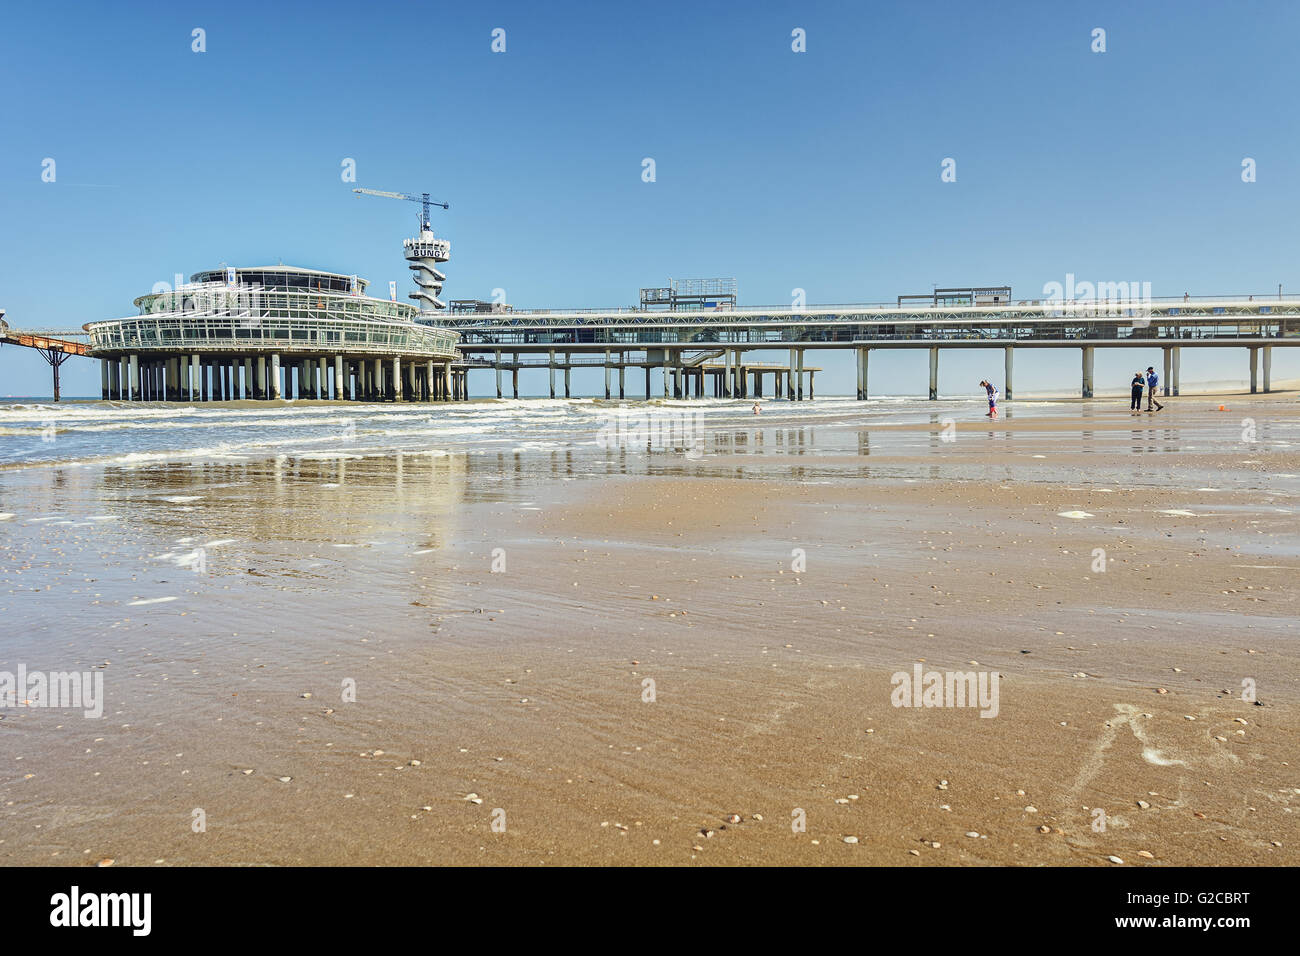 View from the beach to the pier with bungee jumping in Scheveningen, Netherlands. Stock Photo